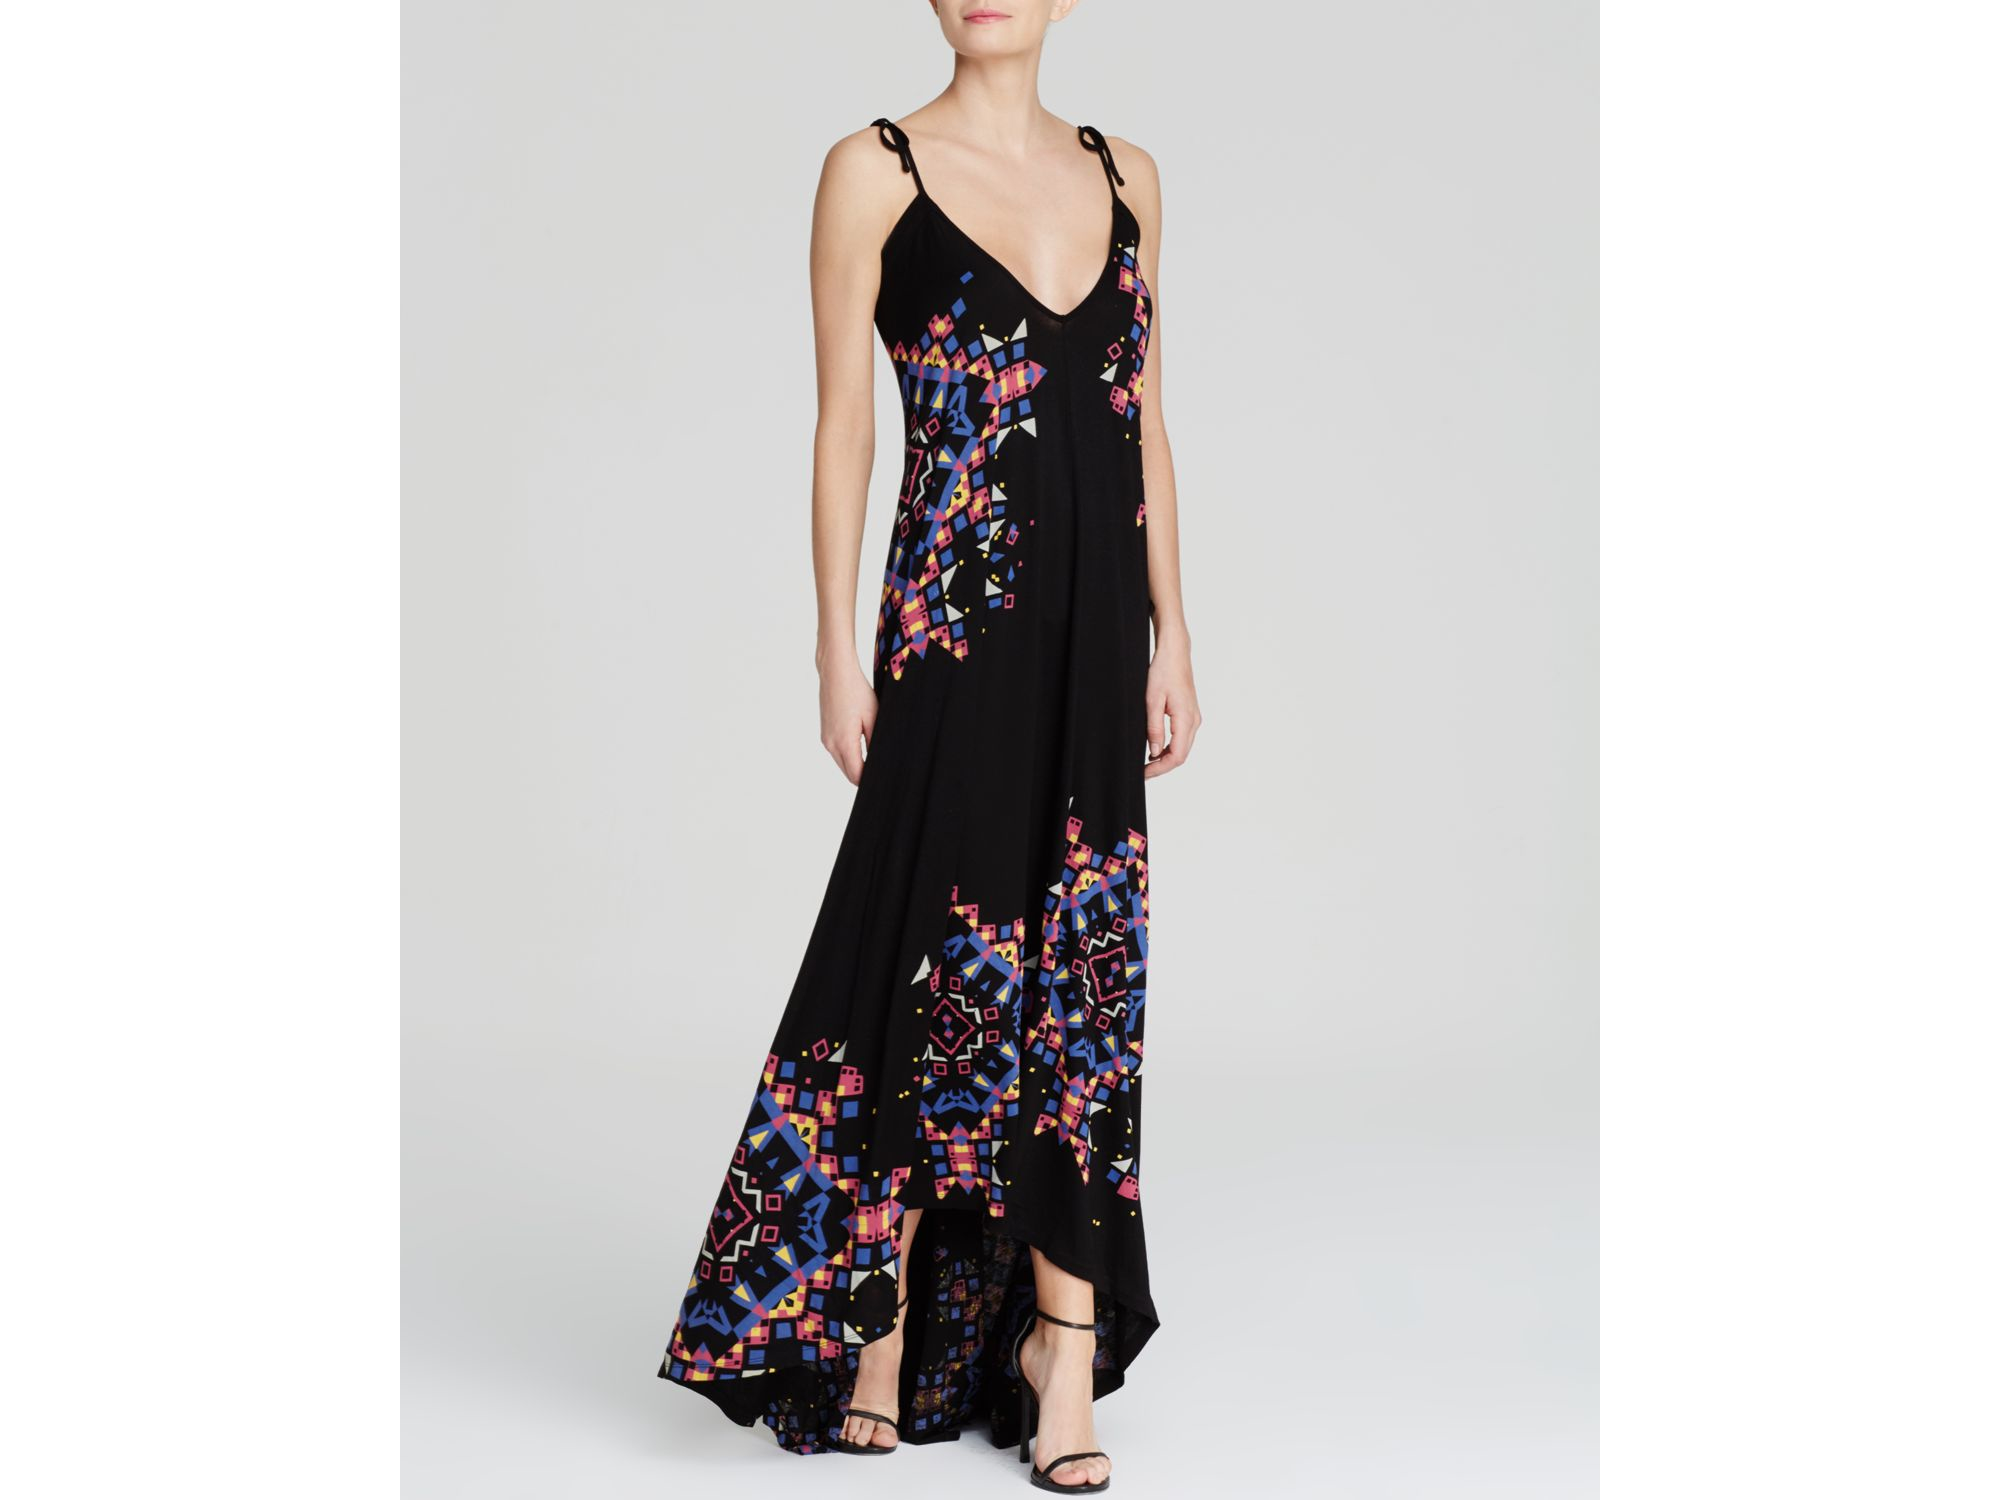 Floral Print Maxi Dress - Nocturnal French Connection v6cMYNz